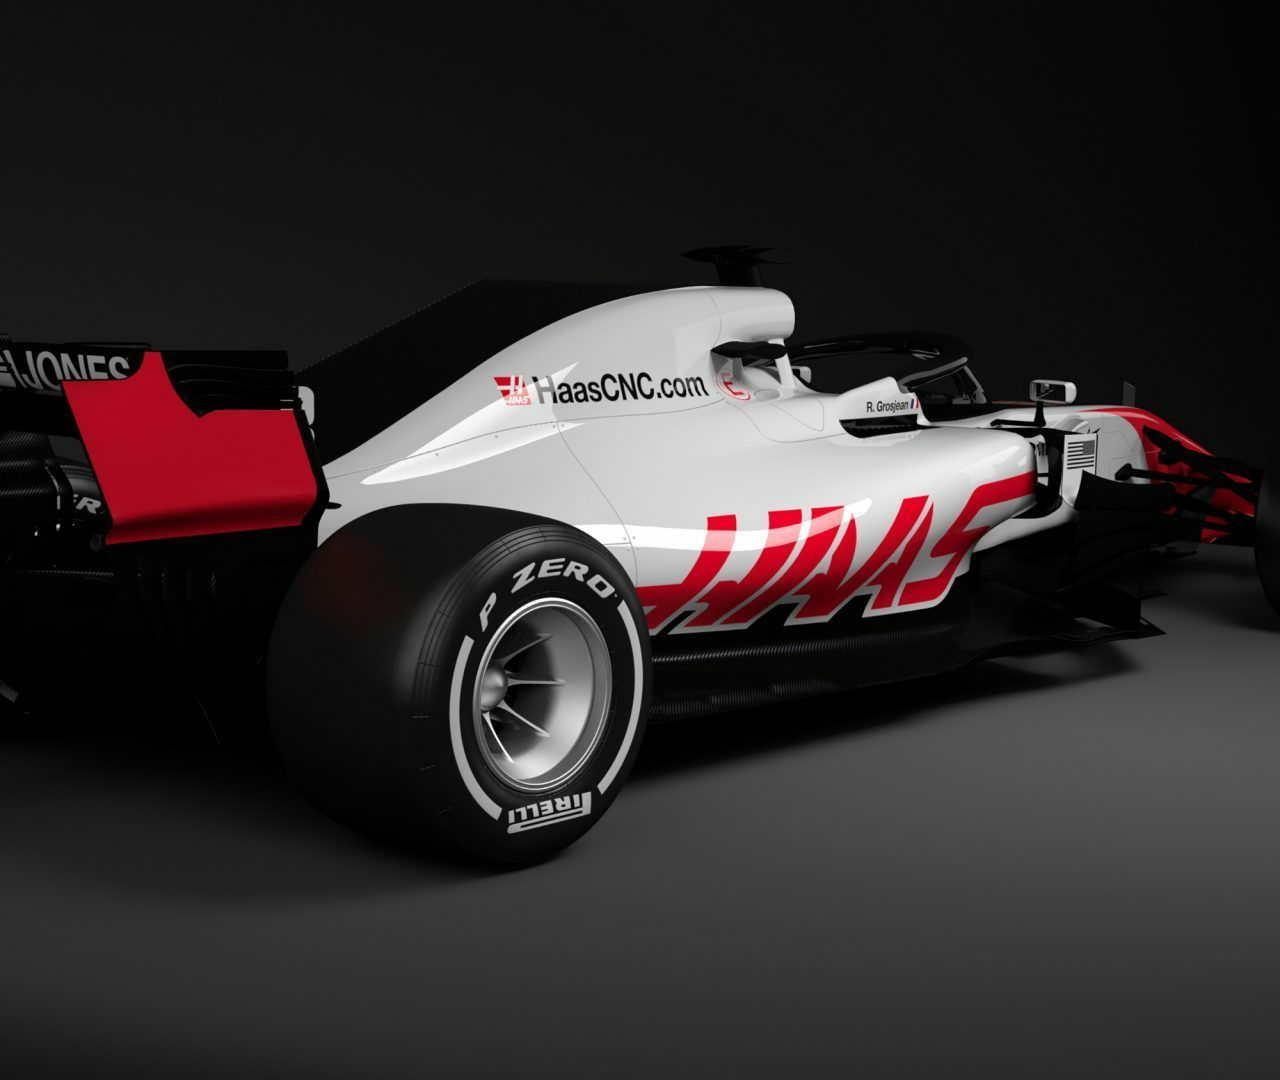 Haas Team2019 F1 Racer Wallpapers